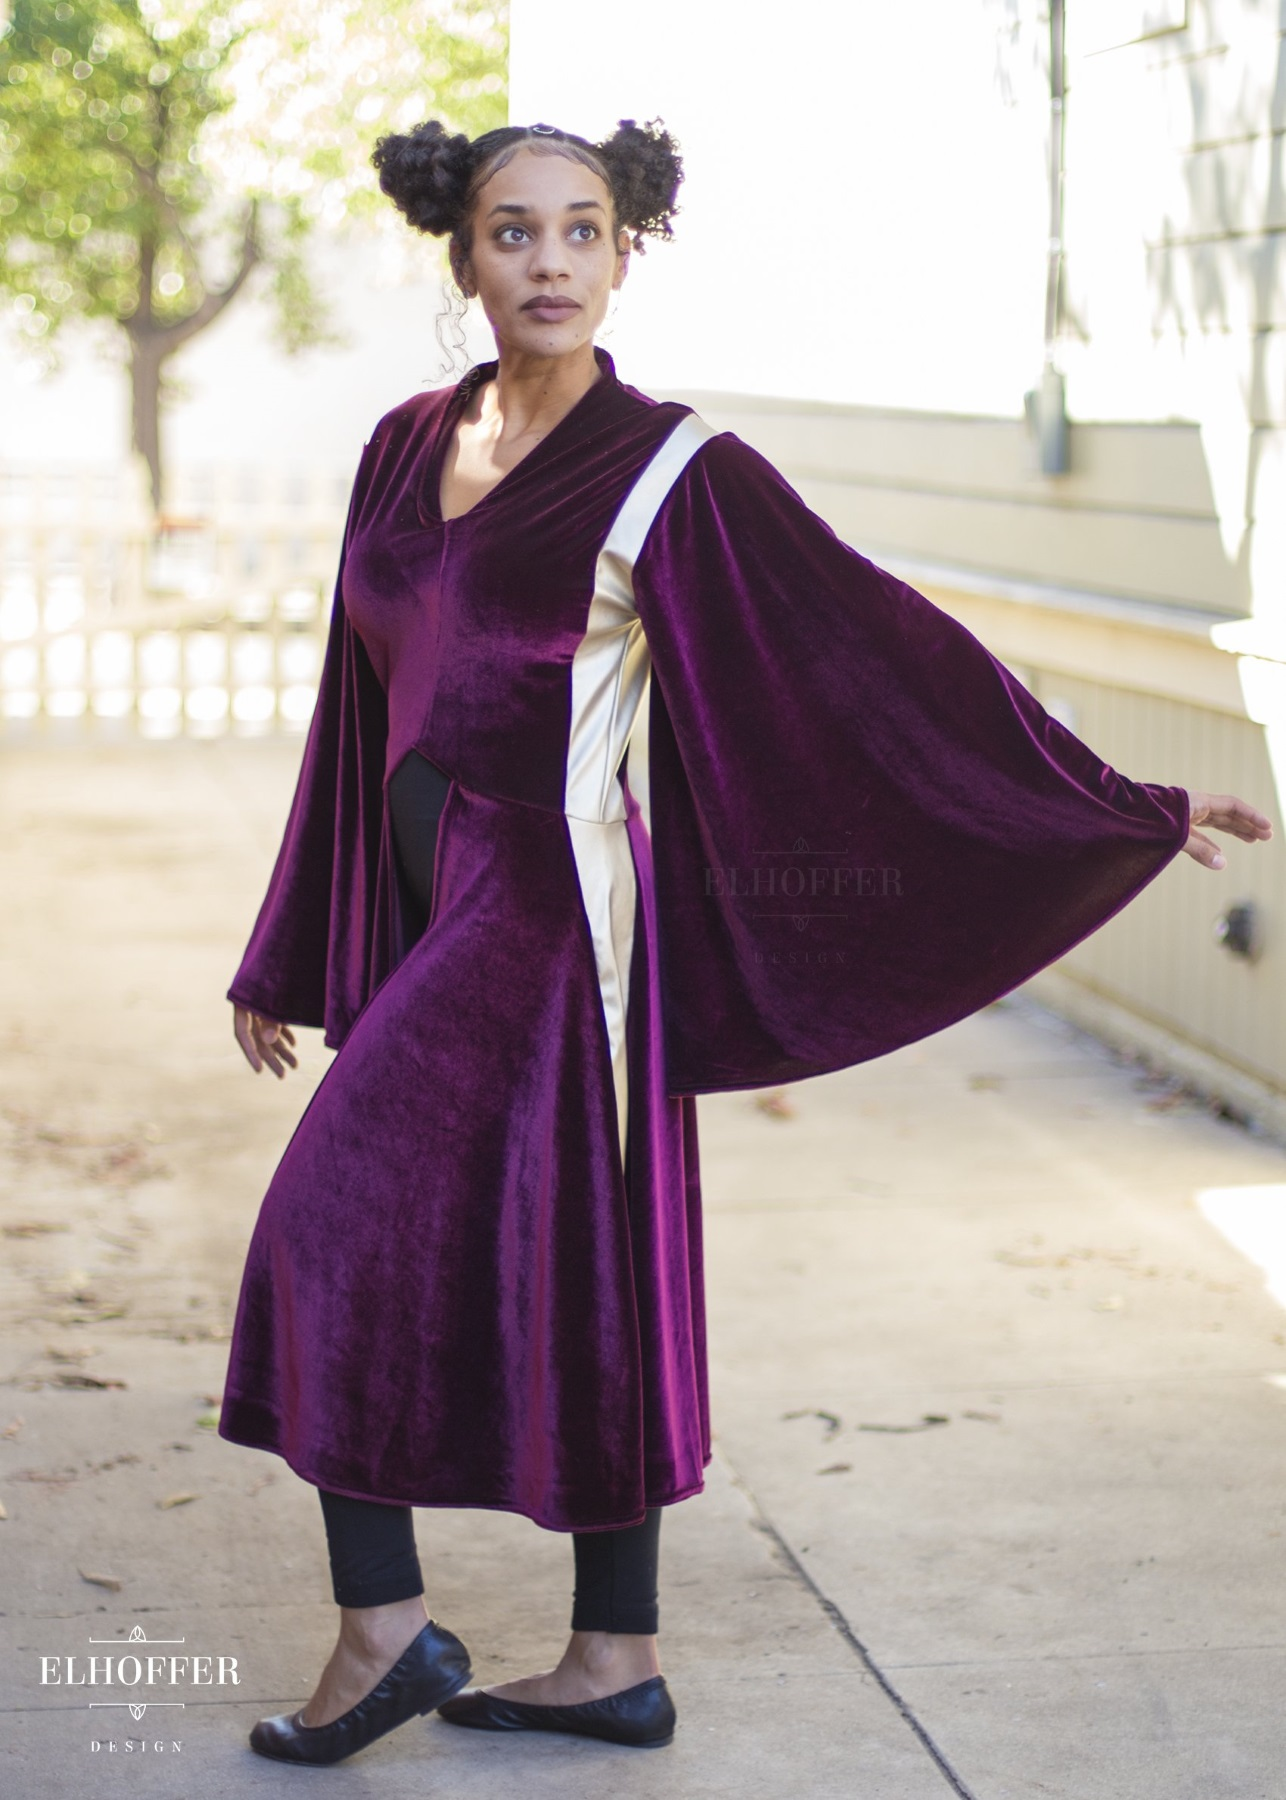 Star Wars Queen Amidala Costume Inspired Galactic Battle Queen Tunic by Elhoffer Design